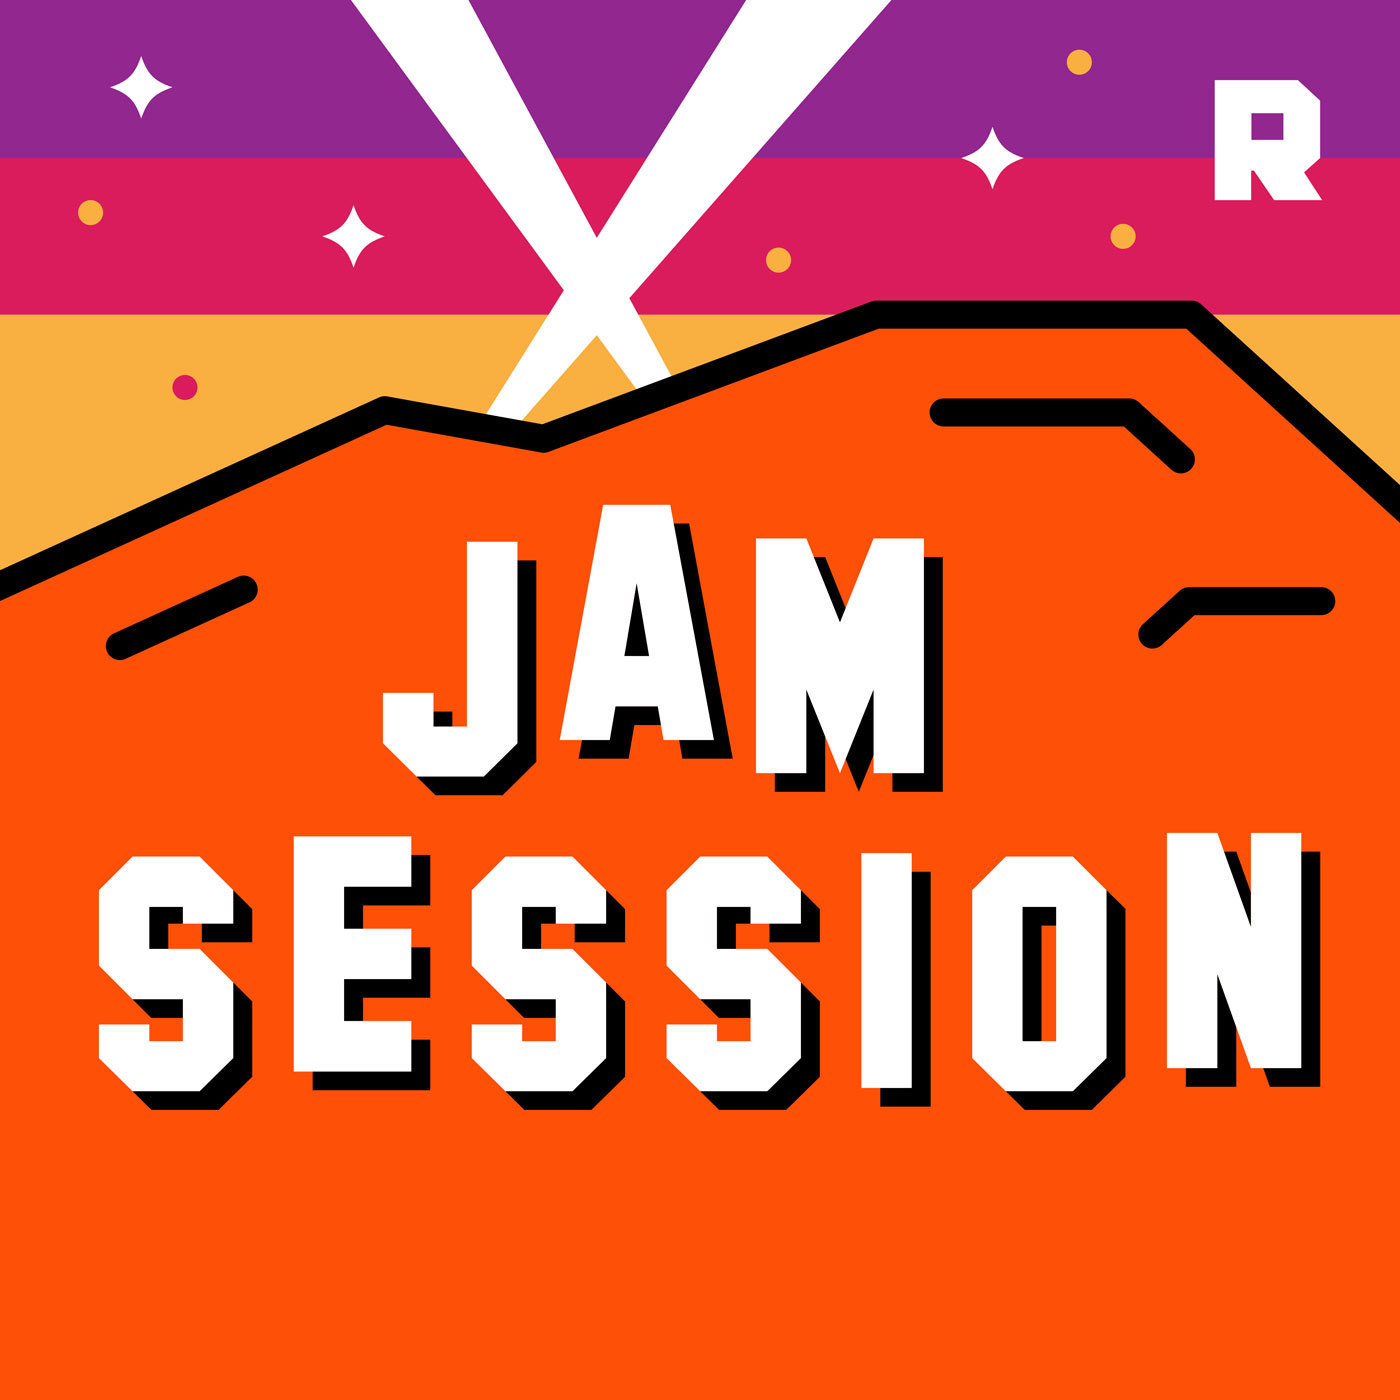 'New York Times' Writer Caity Weaver on Profiling Celebrities, Justin Bieber and Hailey Baldwin's Engagement, and Meghan Markle | Jam Session (Ep. 527)